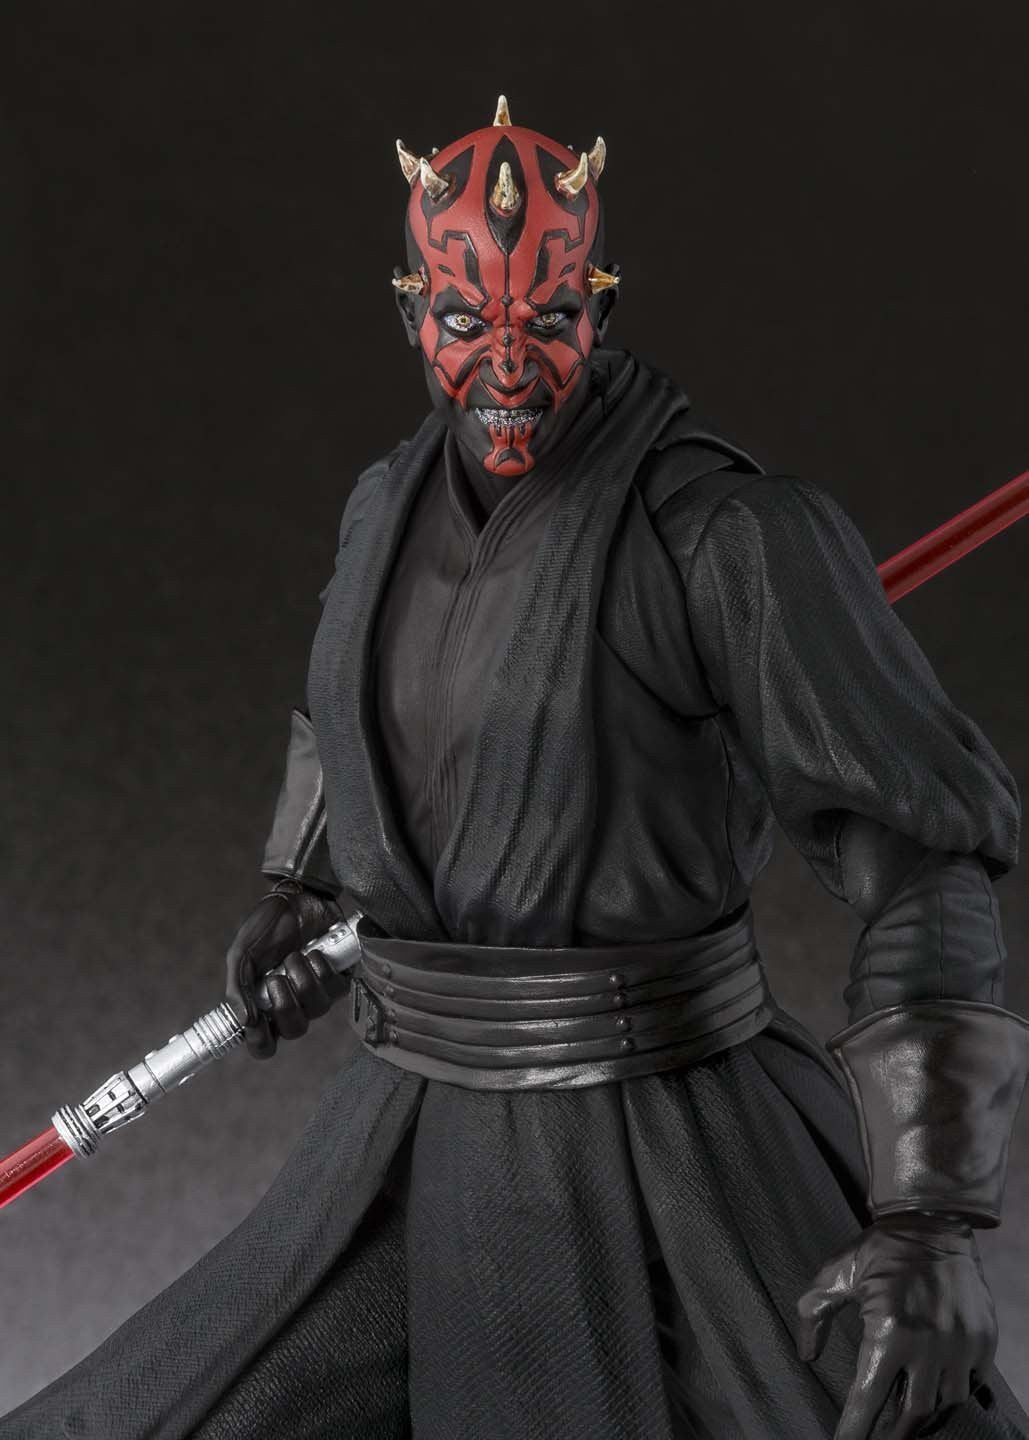 S.H. Figuarts - Star Wars - Darth Maul